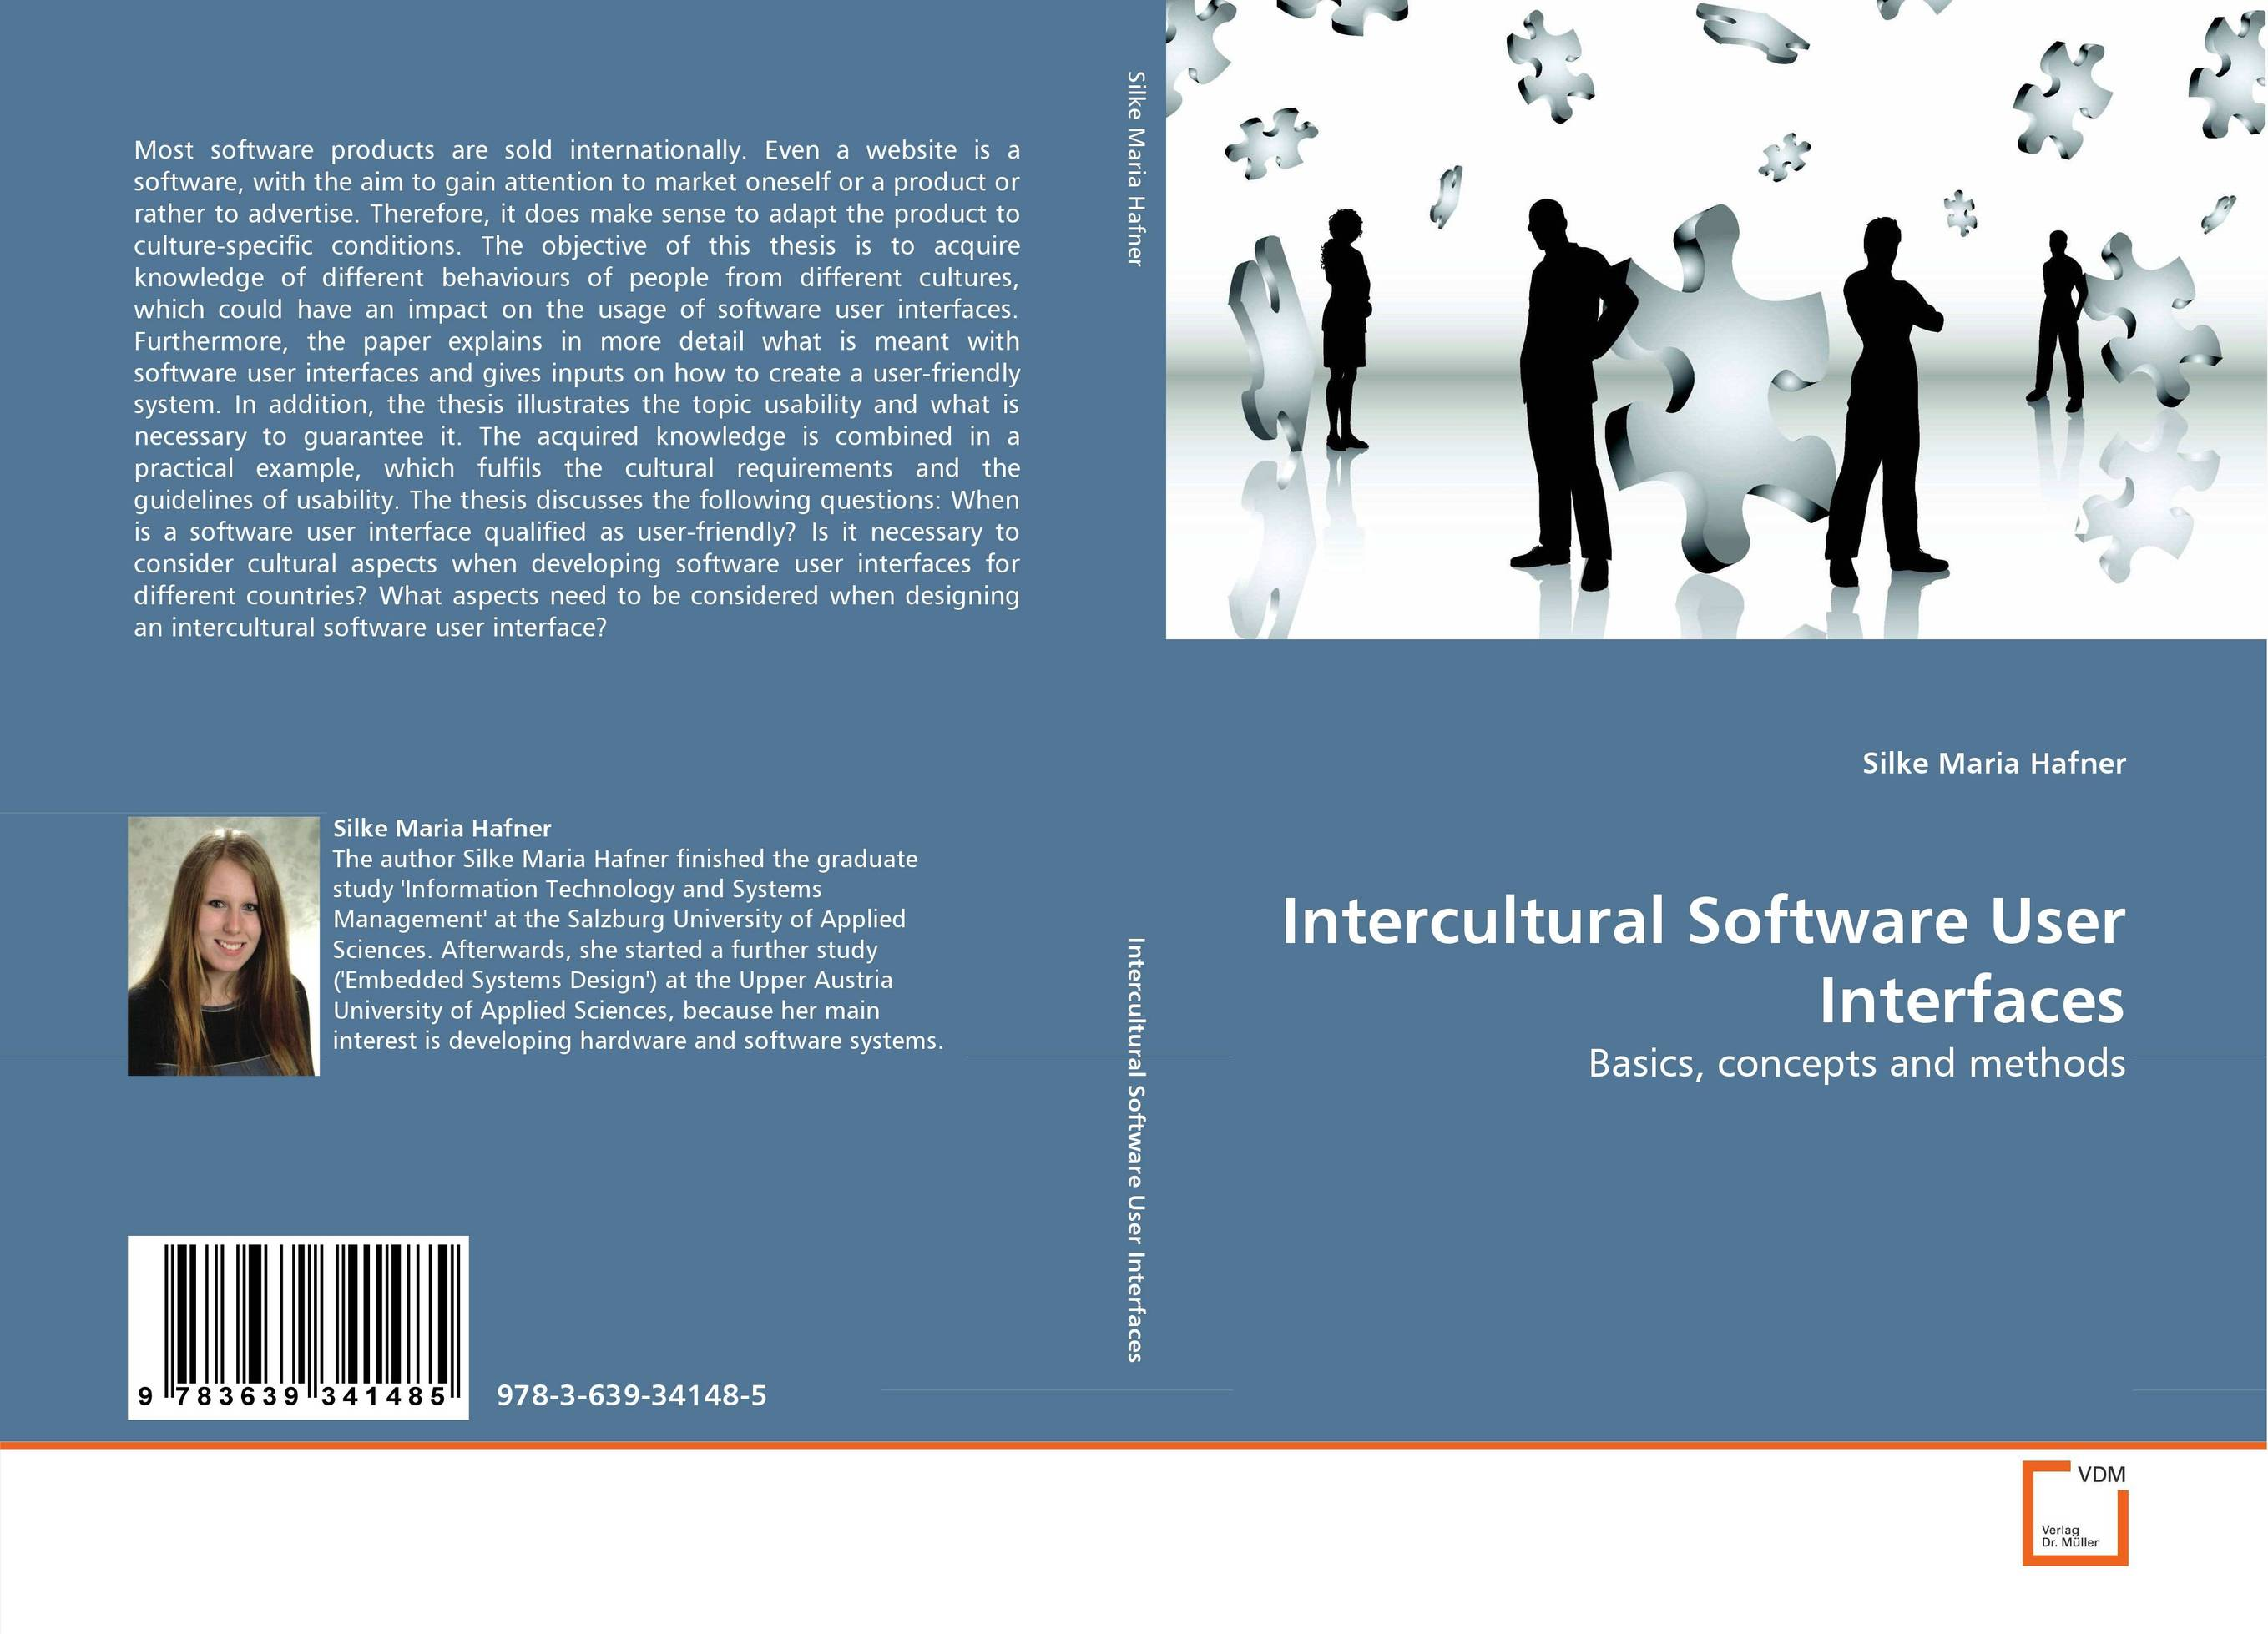 Intercultural Software User Interfaces